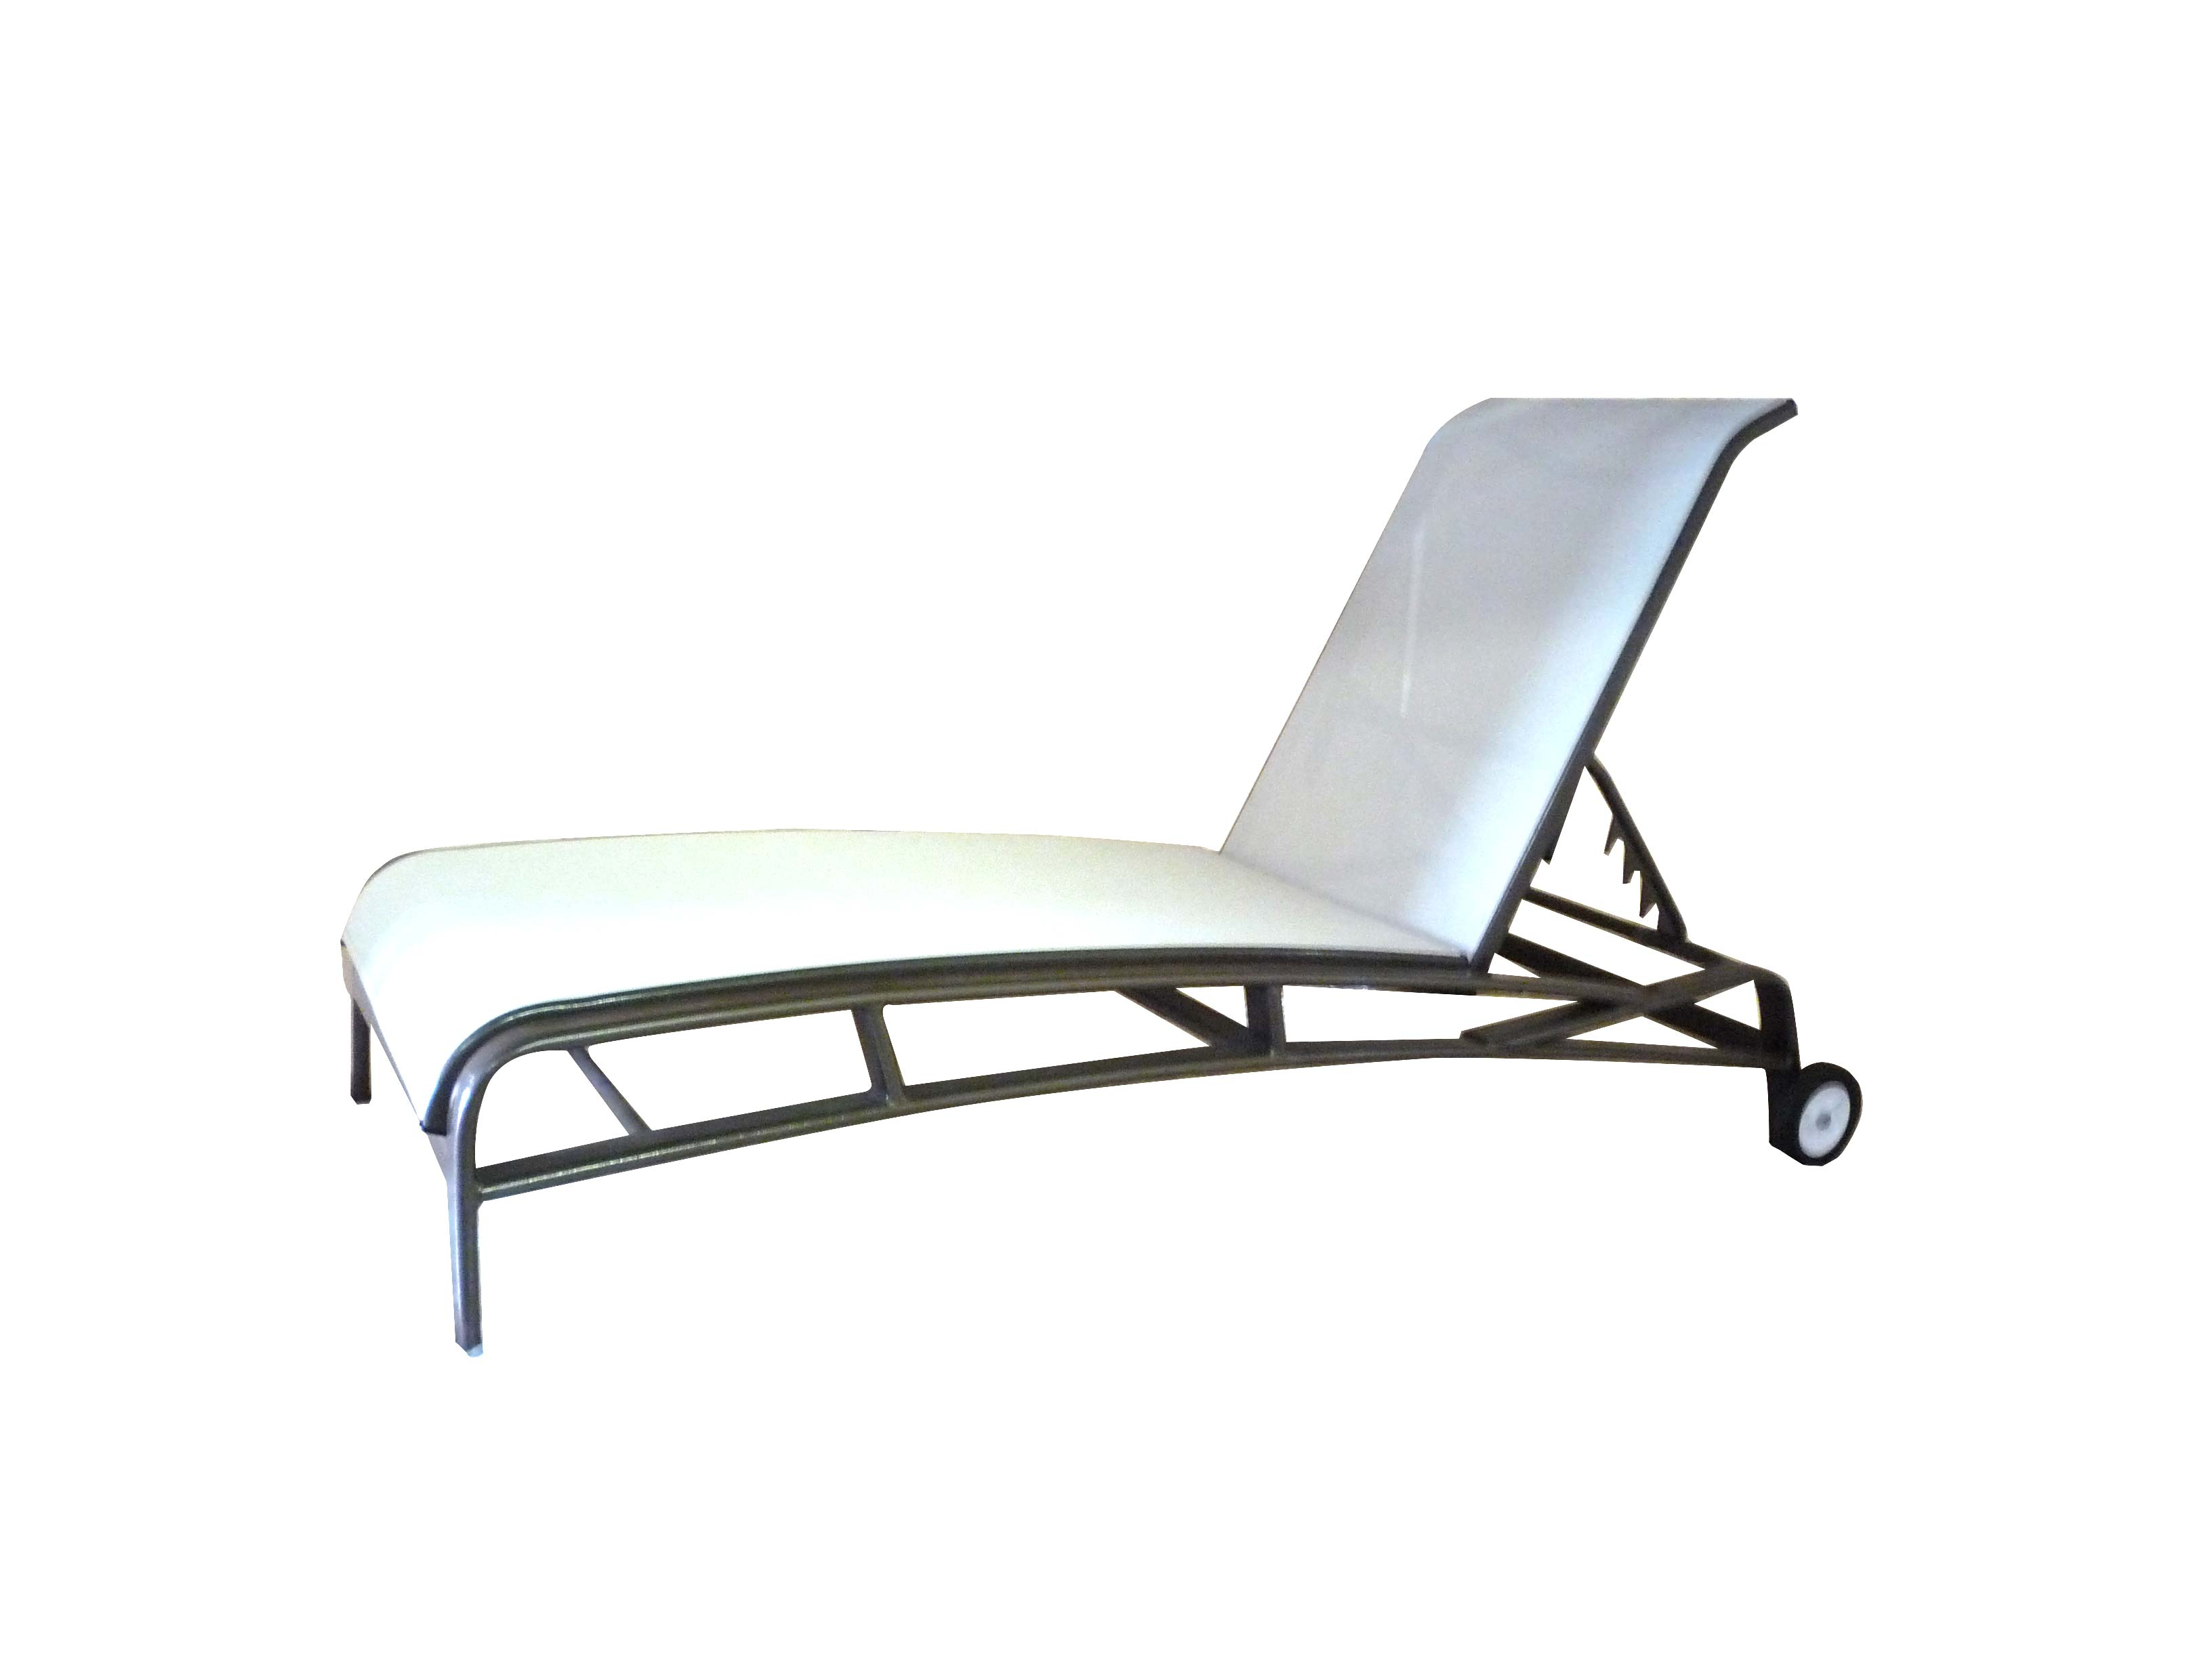 Sling Chaise Lounge Chair E 150 Outdoor Sling Chaise Lounge